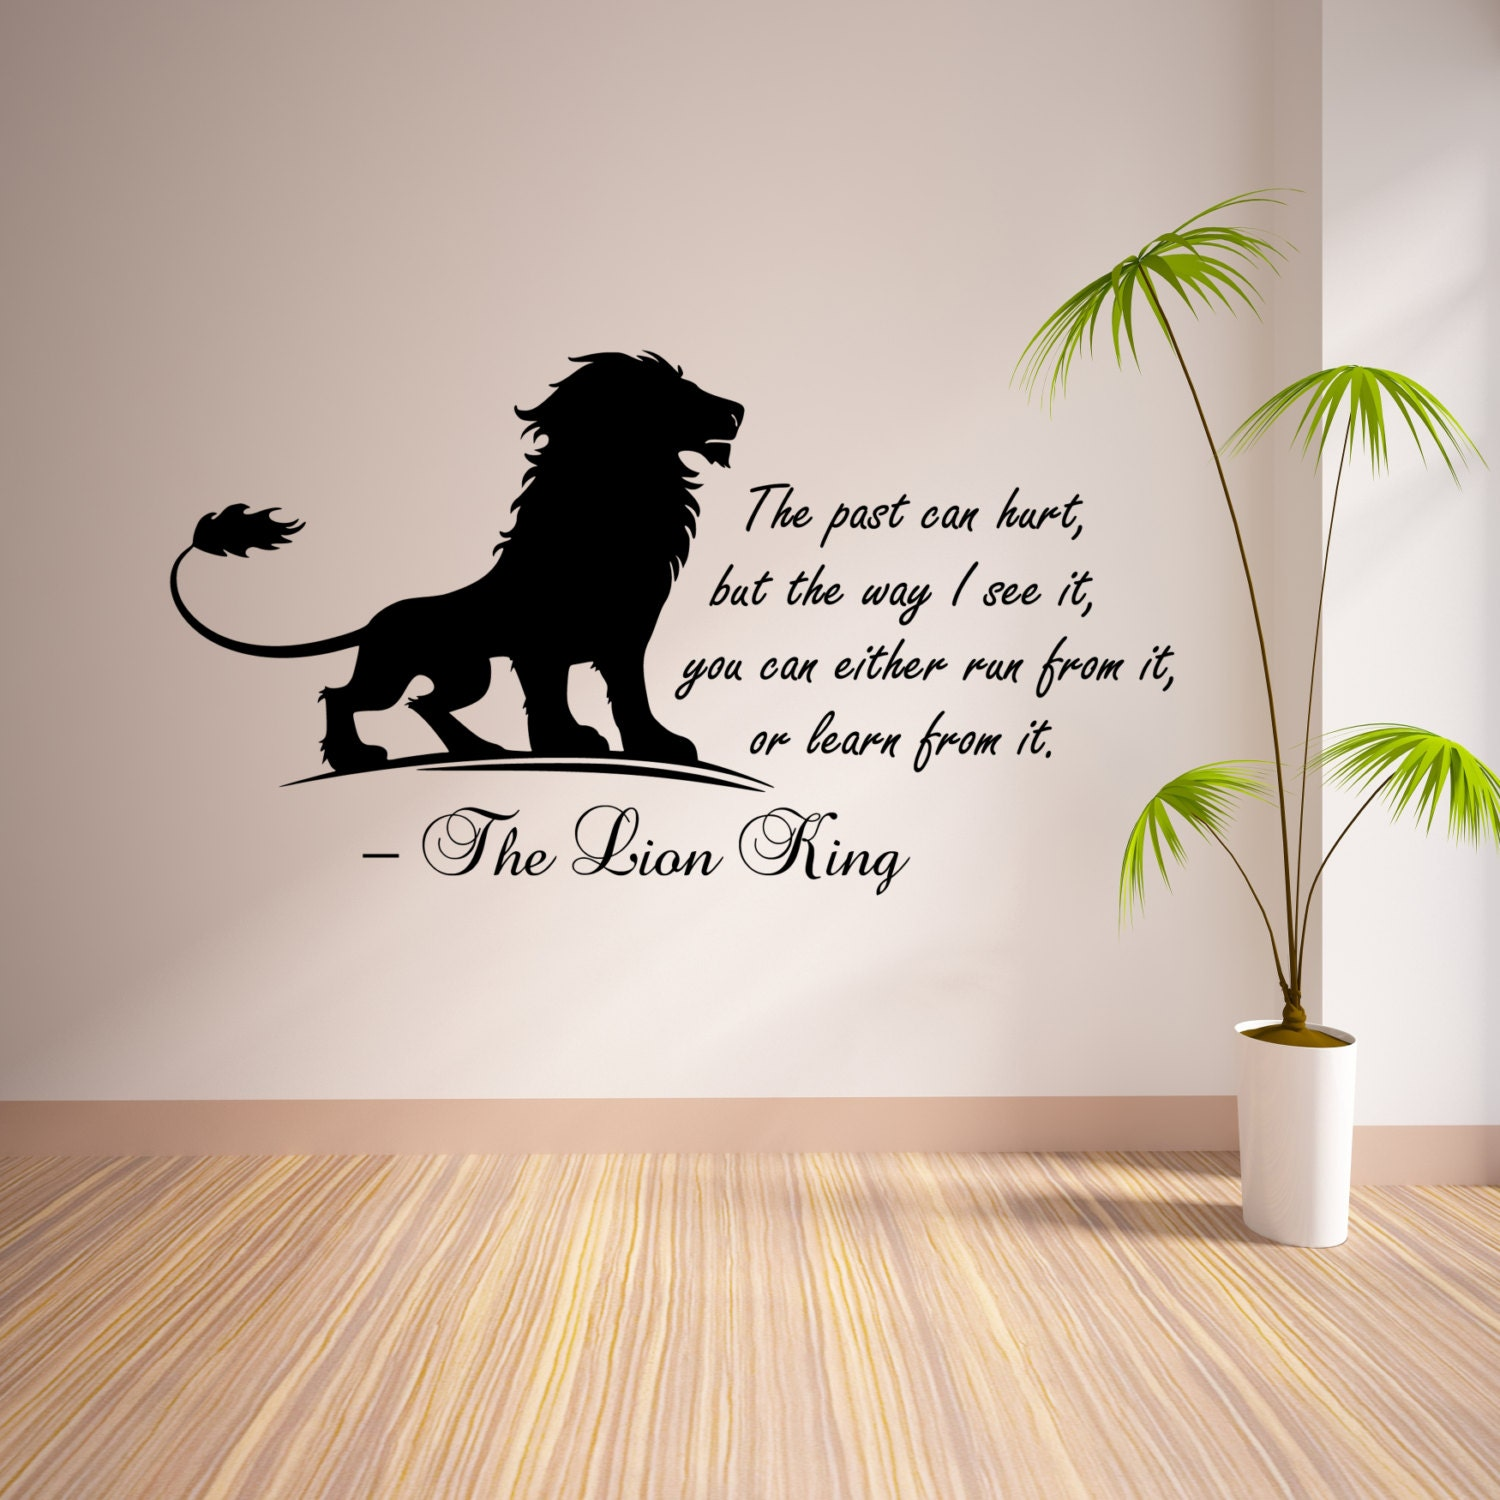 Lion King Bedroom Decorations The Lion King Inspirational Wall Sticker Quote Kids Bedroom